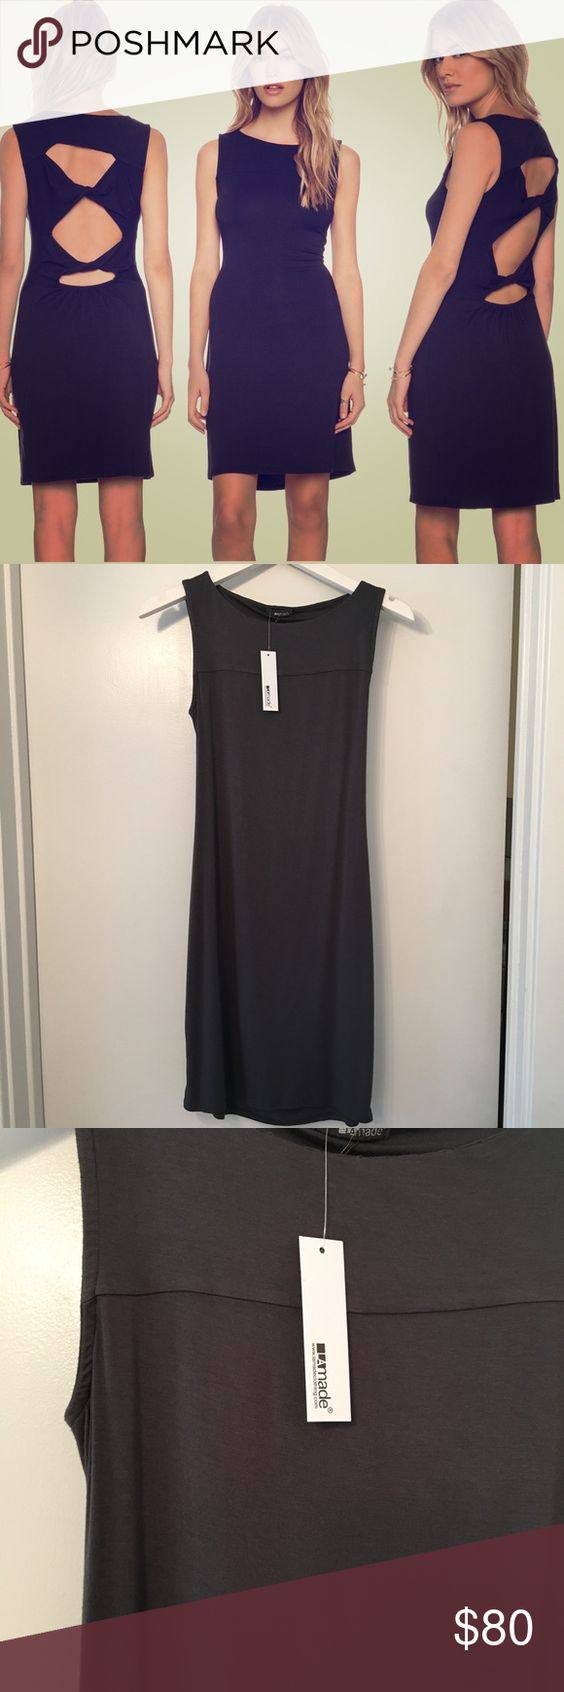 La made dress Dress by LA Made features back it out detailing and boat neckline. Super soft fabric. Hemline hits right above the knee. 95% micromodal 5% spandex. Color is dark gray. This item is NWT retail and has never been sold before, perfect condition. NO TRADES! La made Dresses